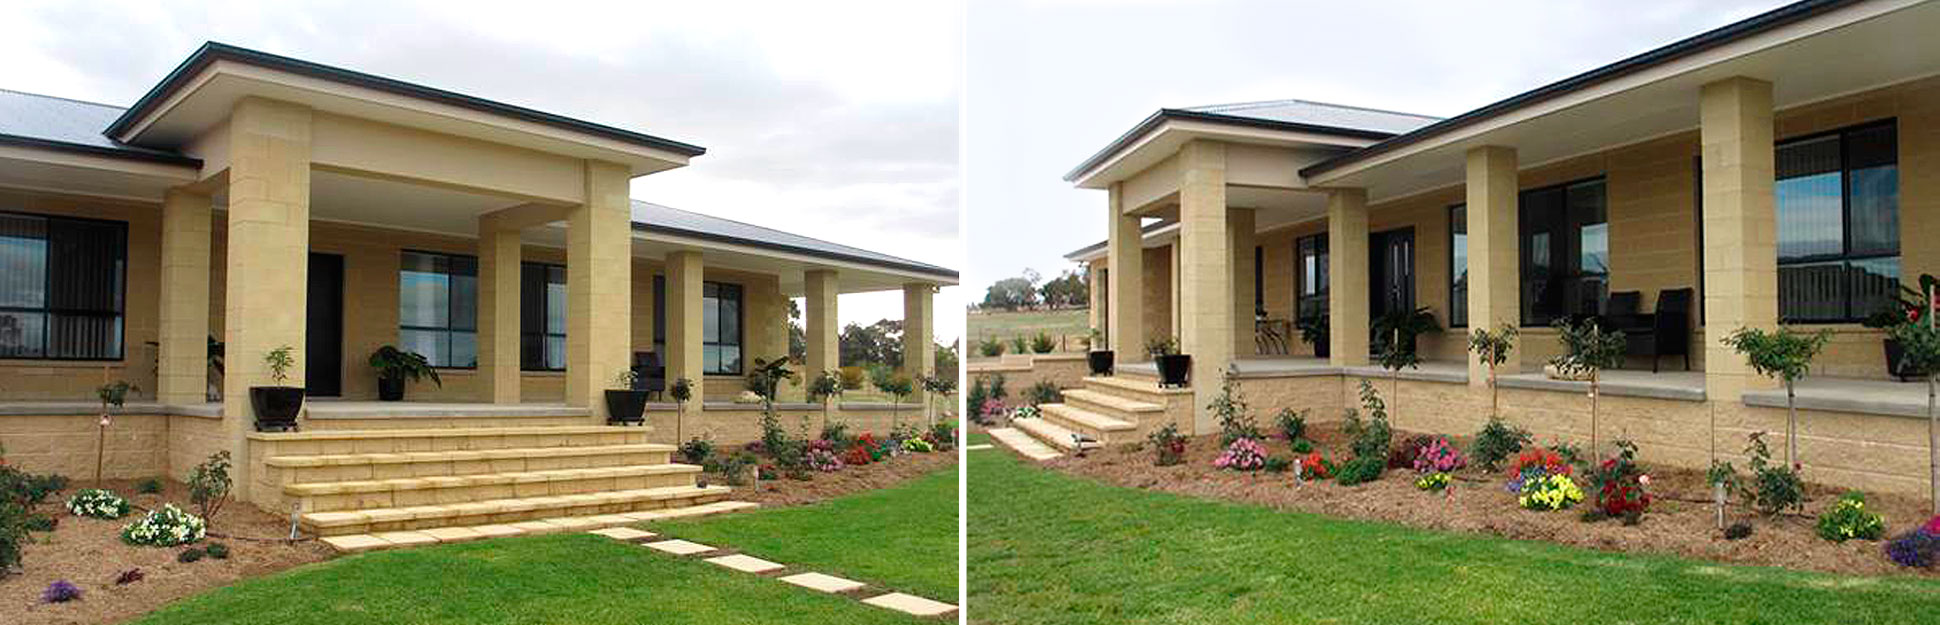 Cowra Concrete Products masonry block residence